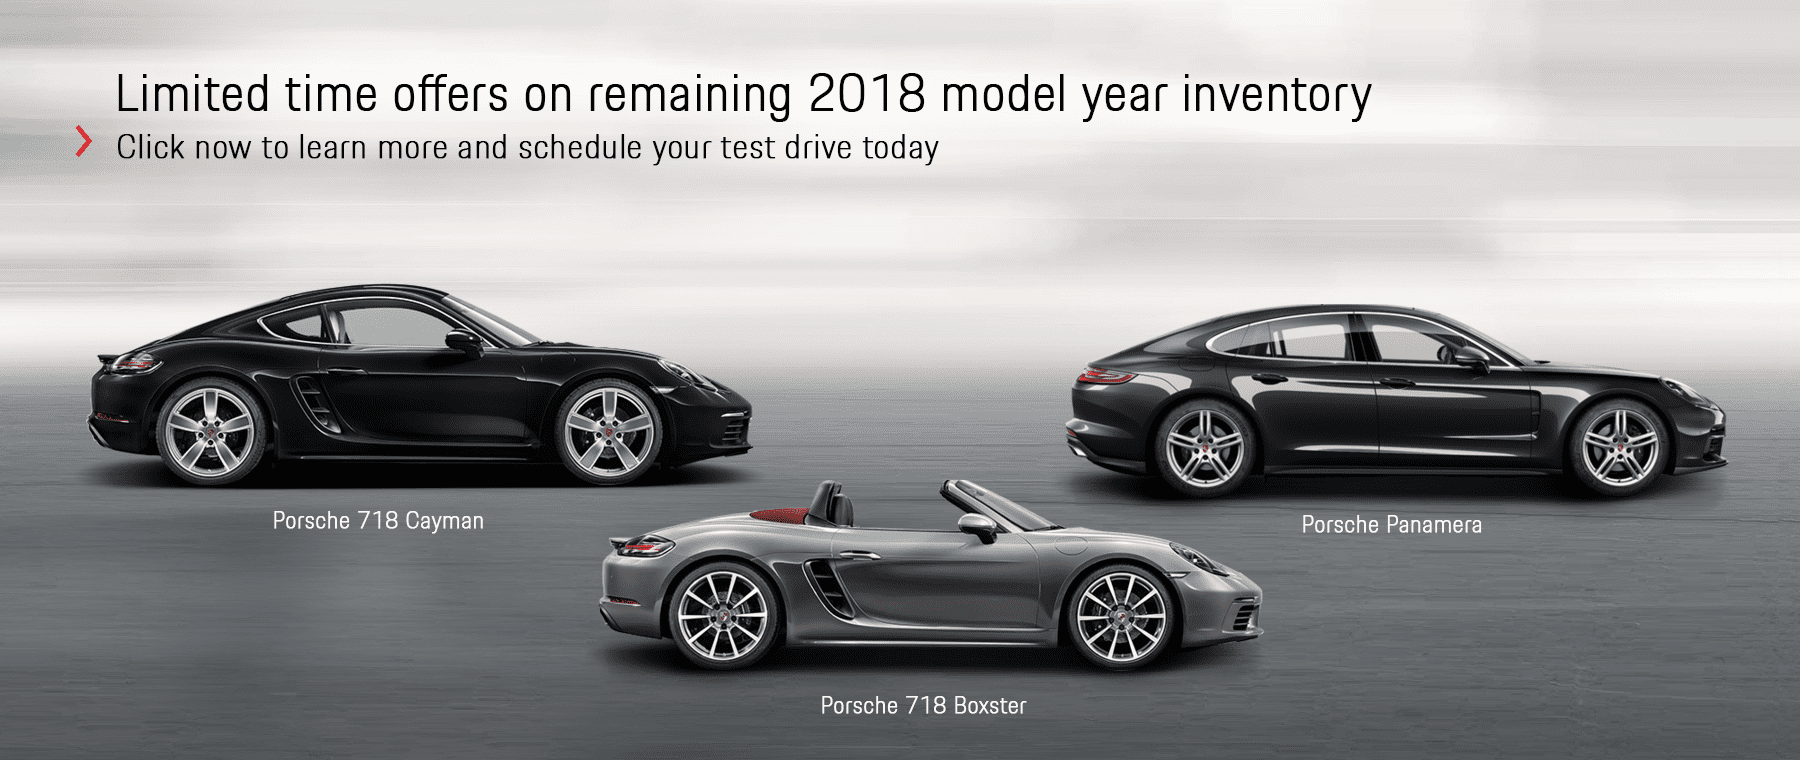 Porsche Limited Time Offers